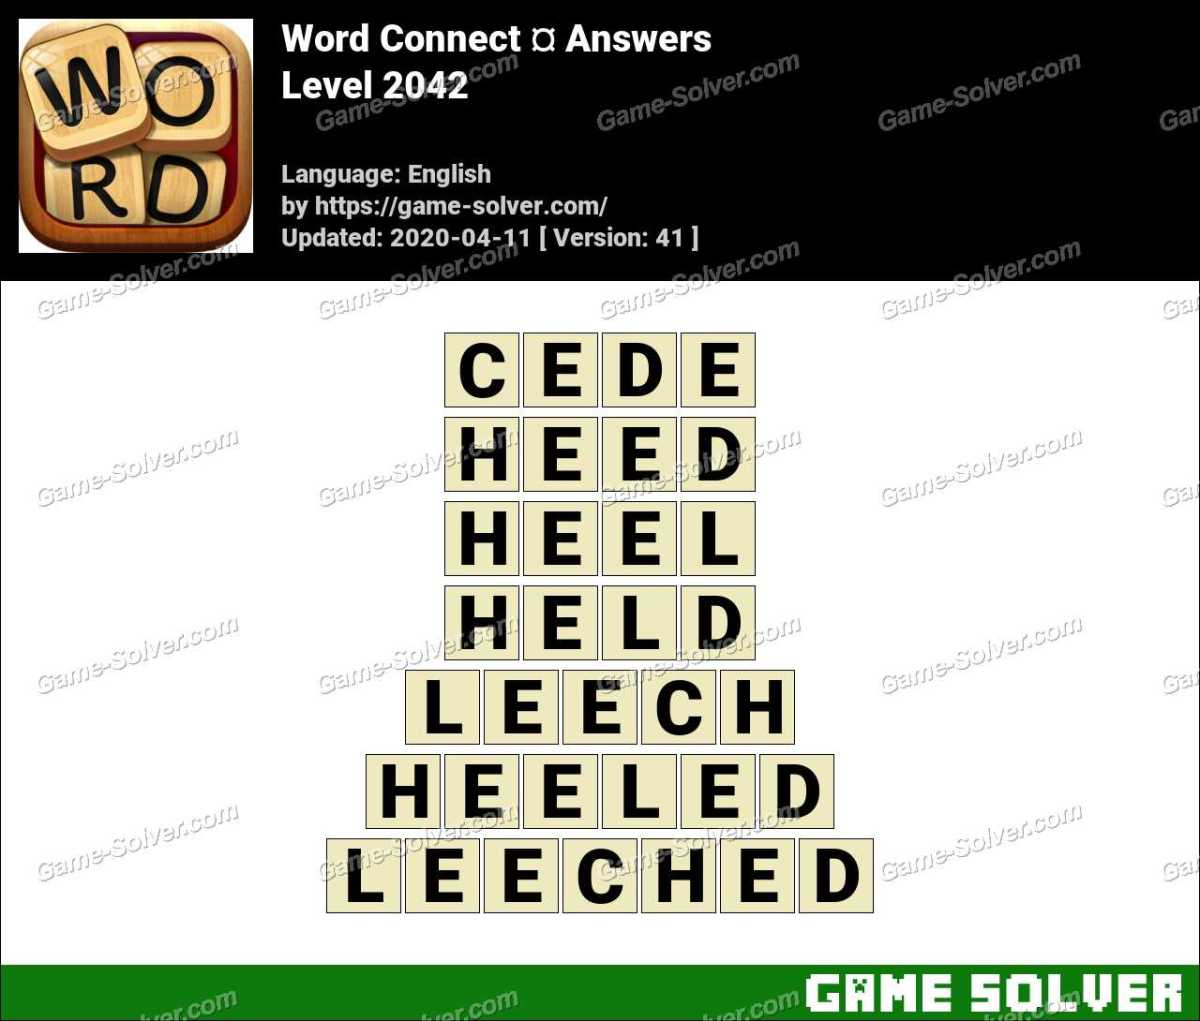 Word Connect Level 2042 Answers